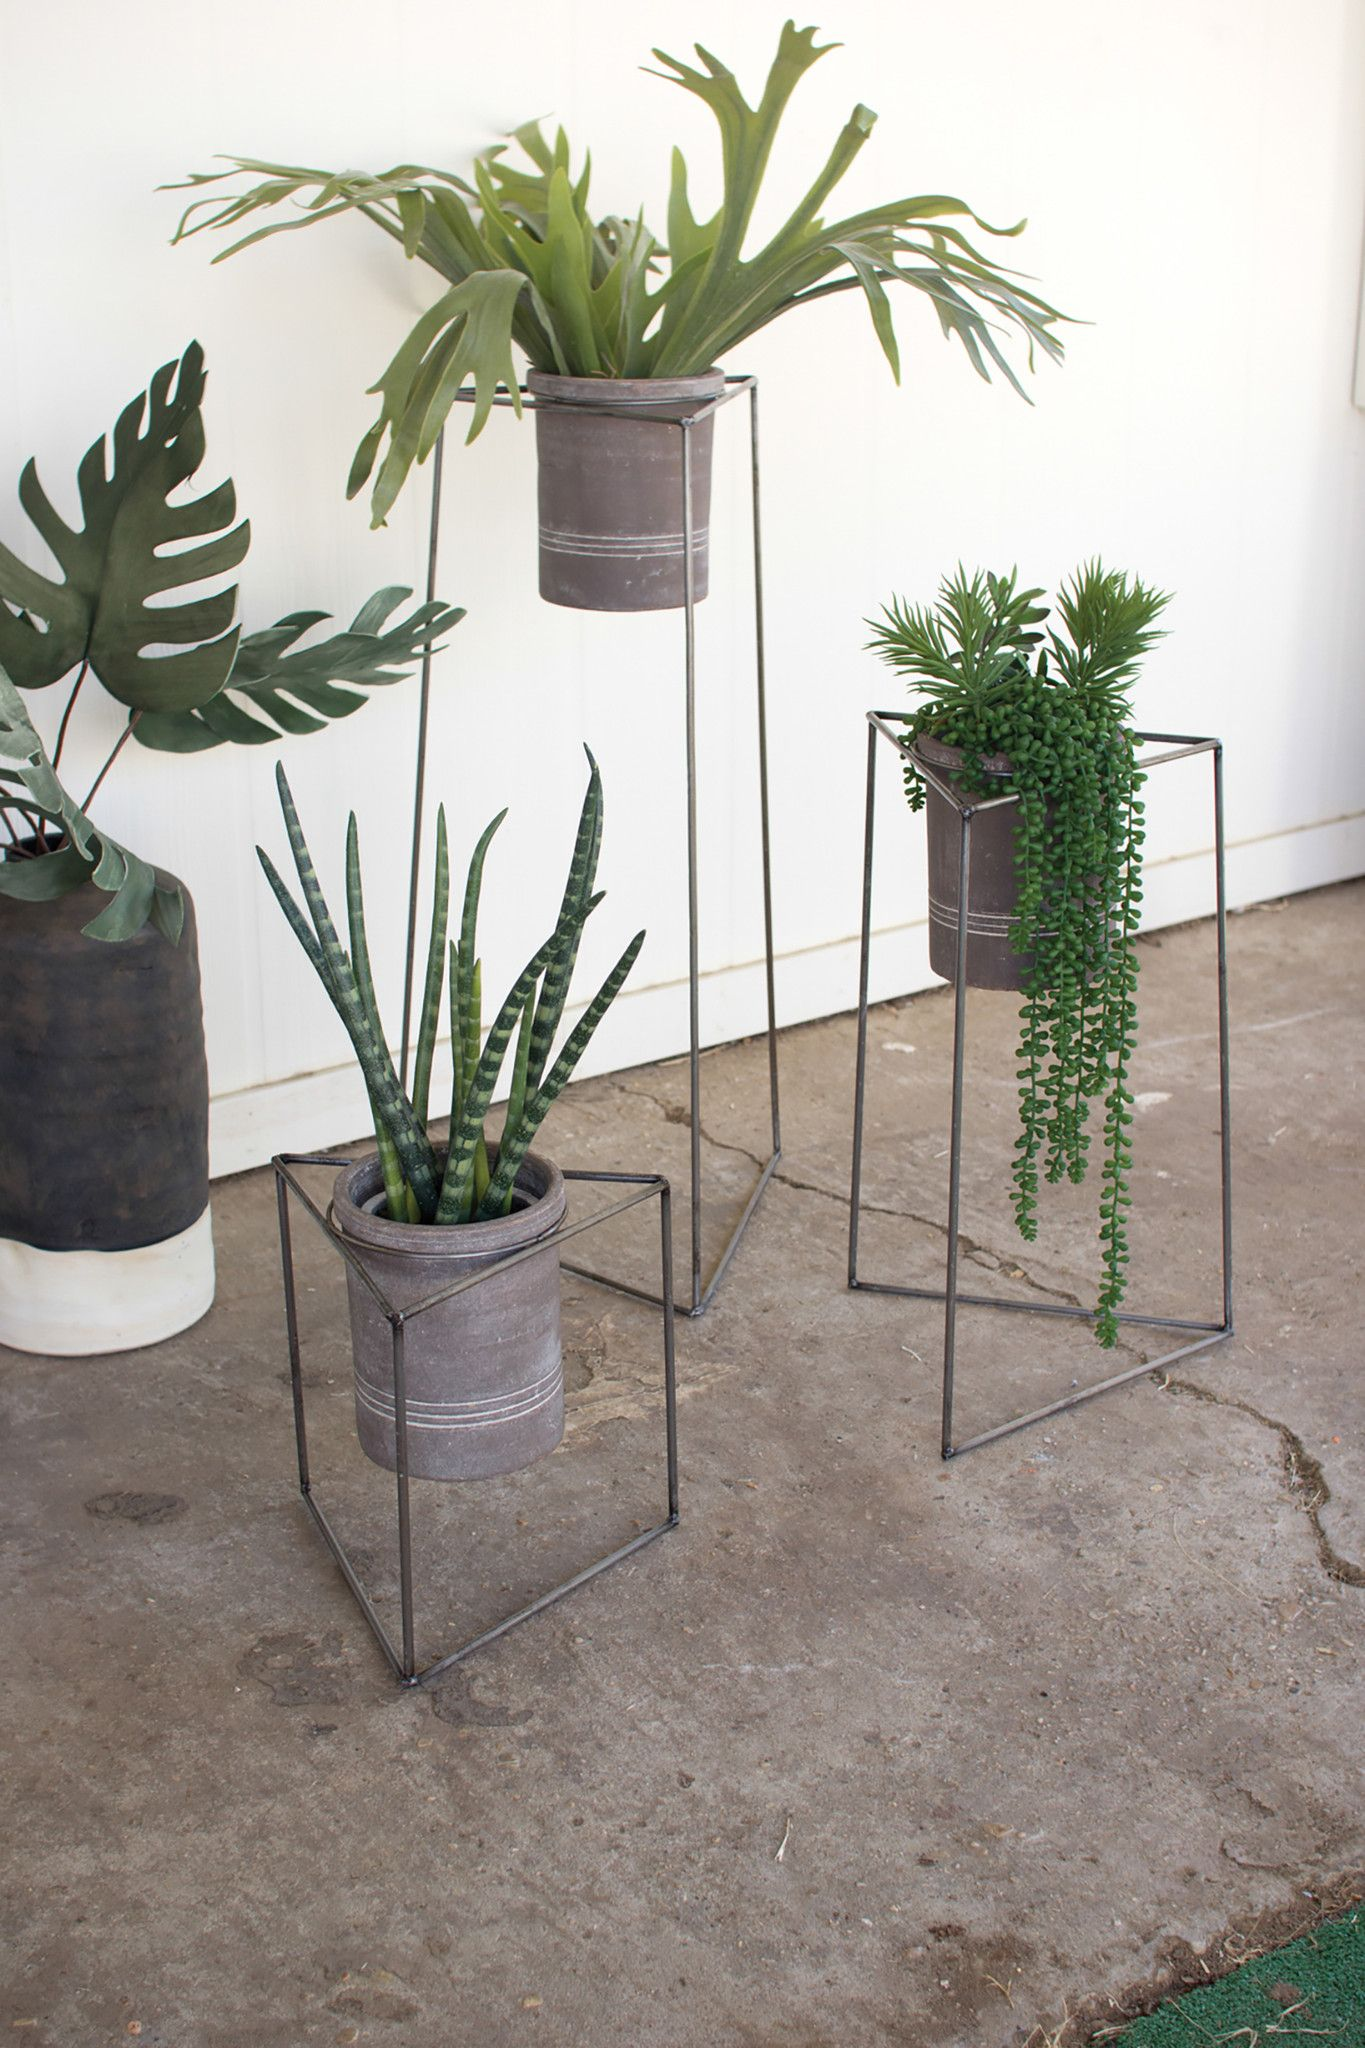 set of  industrial modern triangle planter stands with gray clay pots. set of  industrial modern triangle planter stands with gray clay